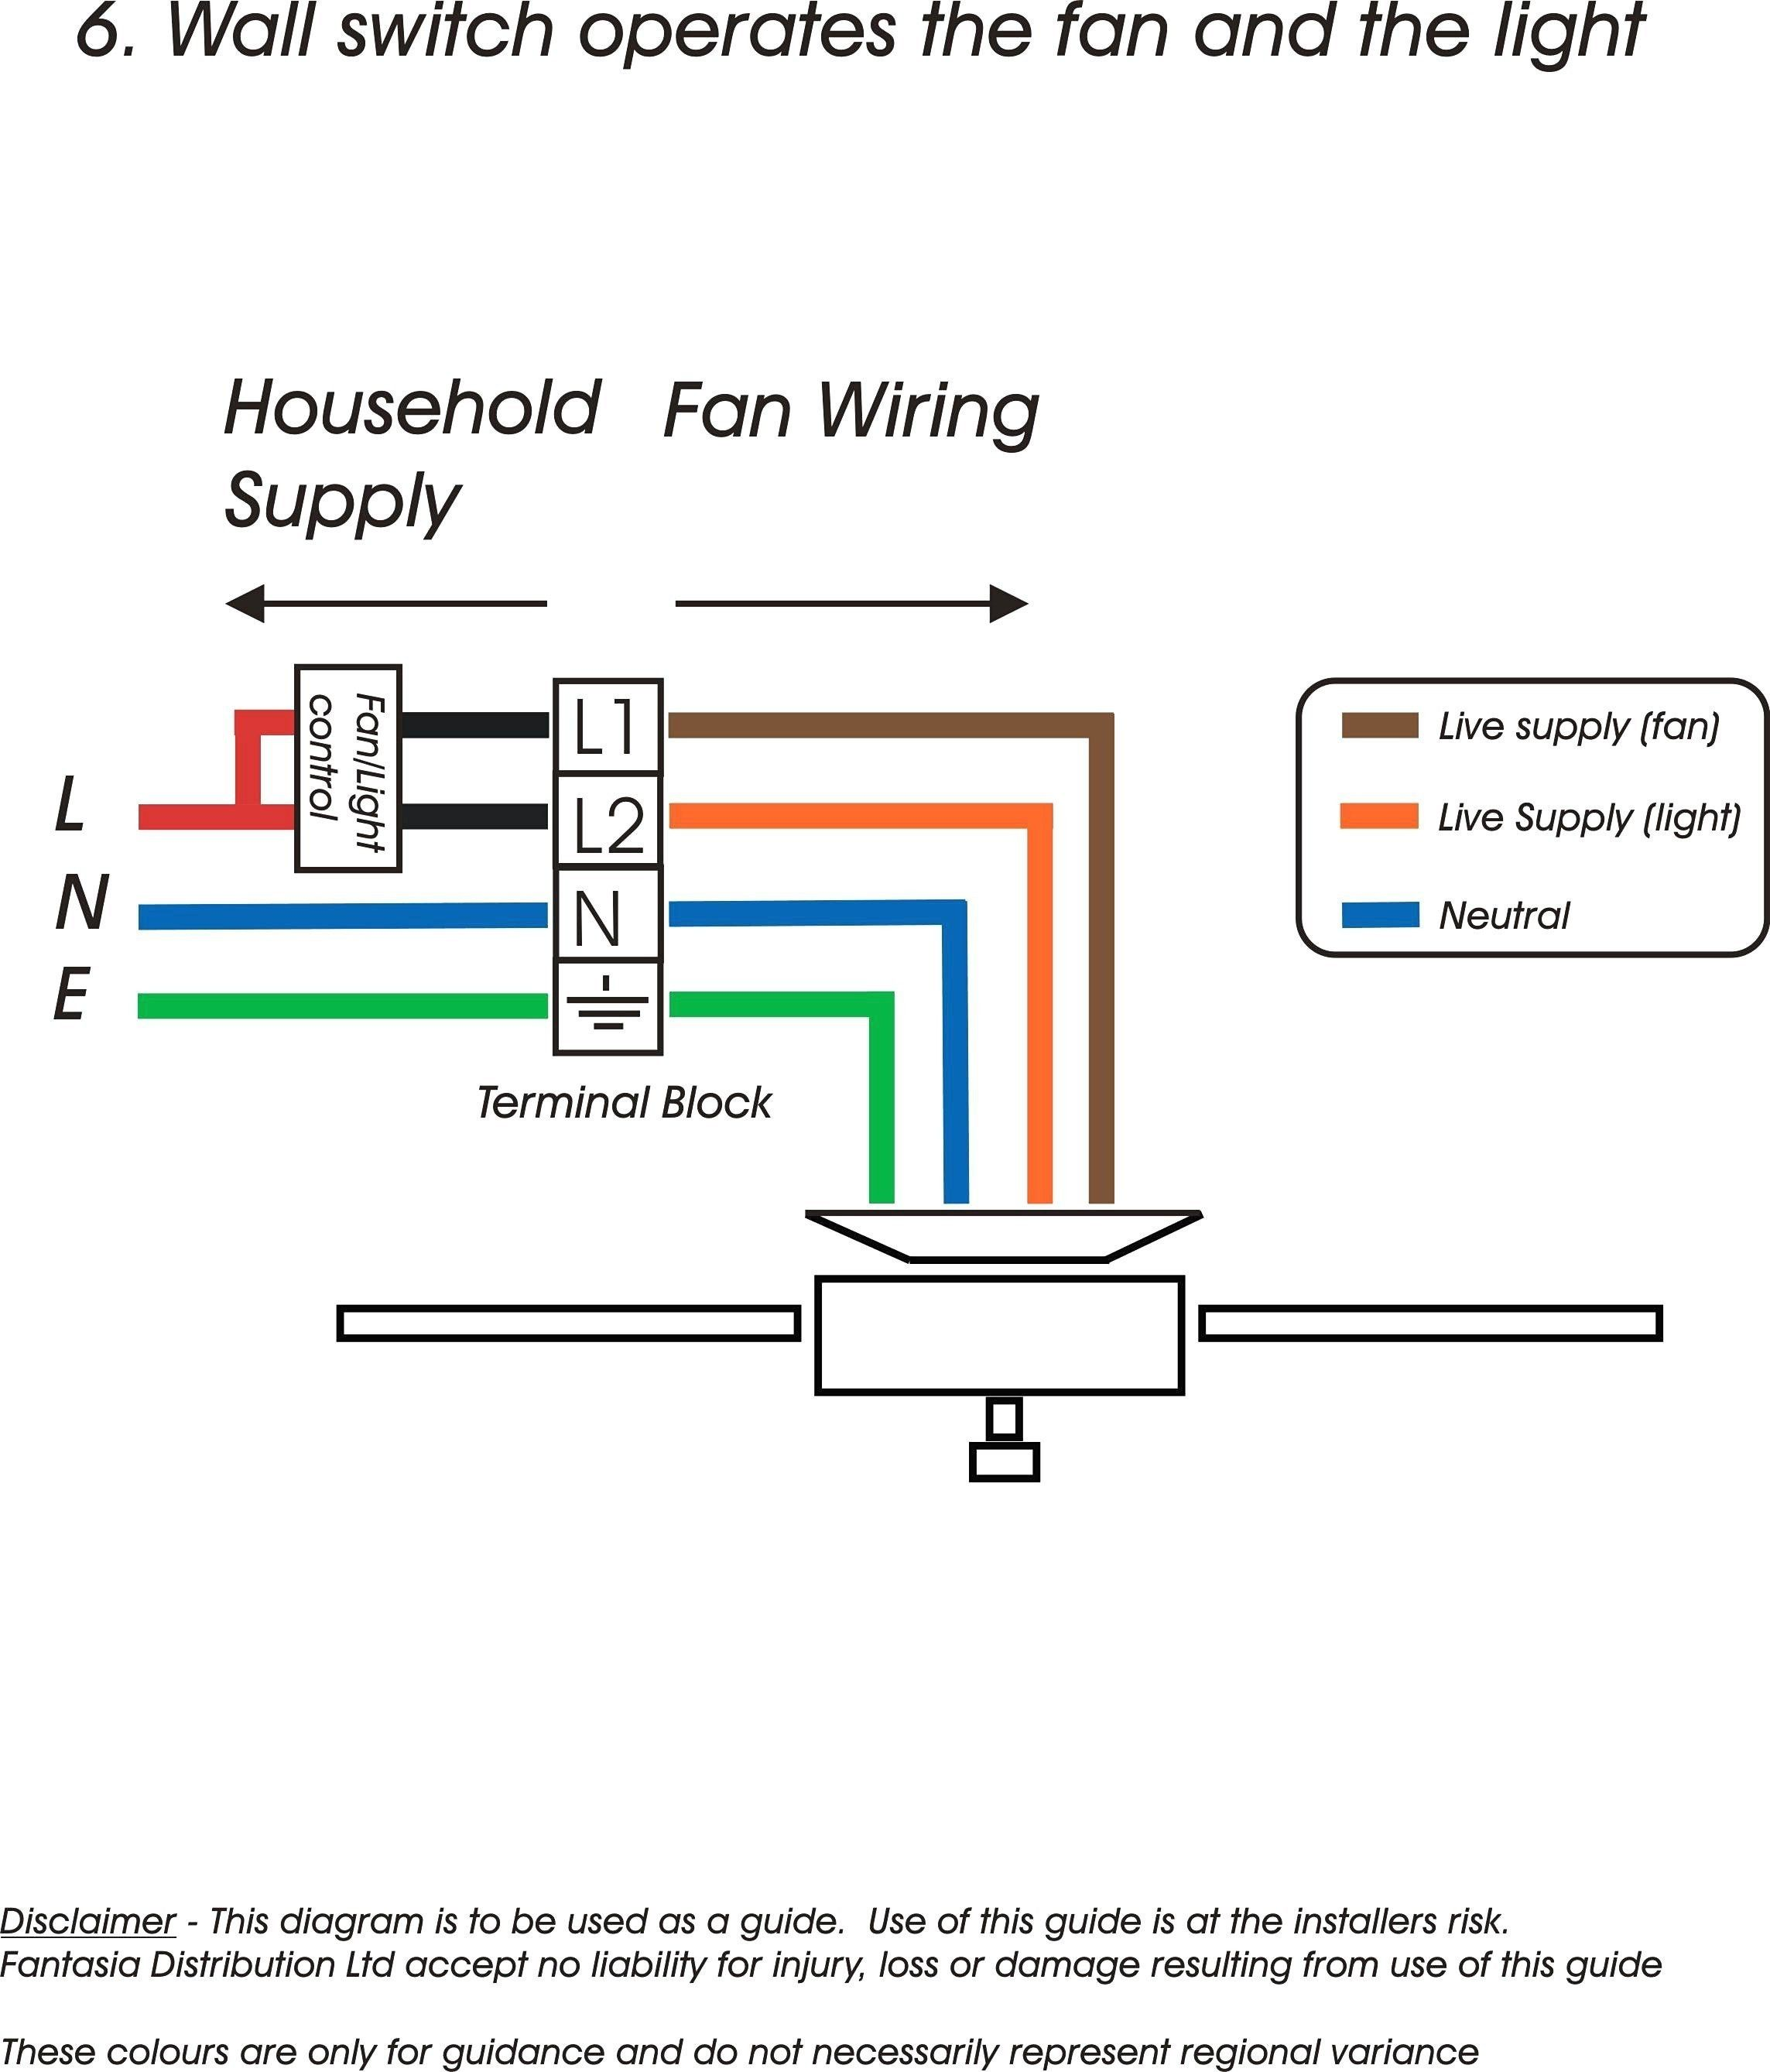 New Wiring Diagram for Light Fixture and Switch #diagrams #digramssample  #diagramimages #wiringdiagra… | Ceiling fan switch, Ceiling fan wiring,  Light switch wiring | Bathroom Light Fixture Wiring Diagram |  | Pinterest